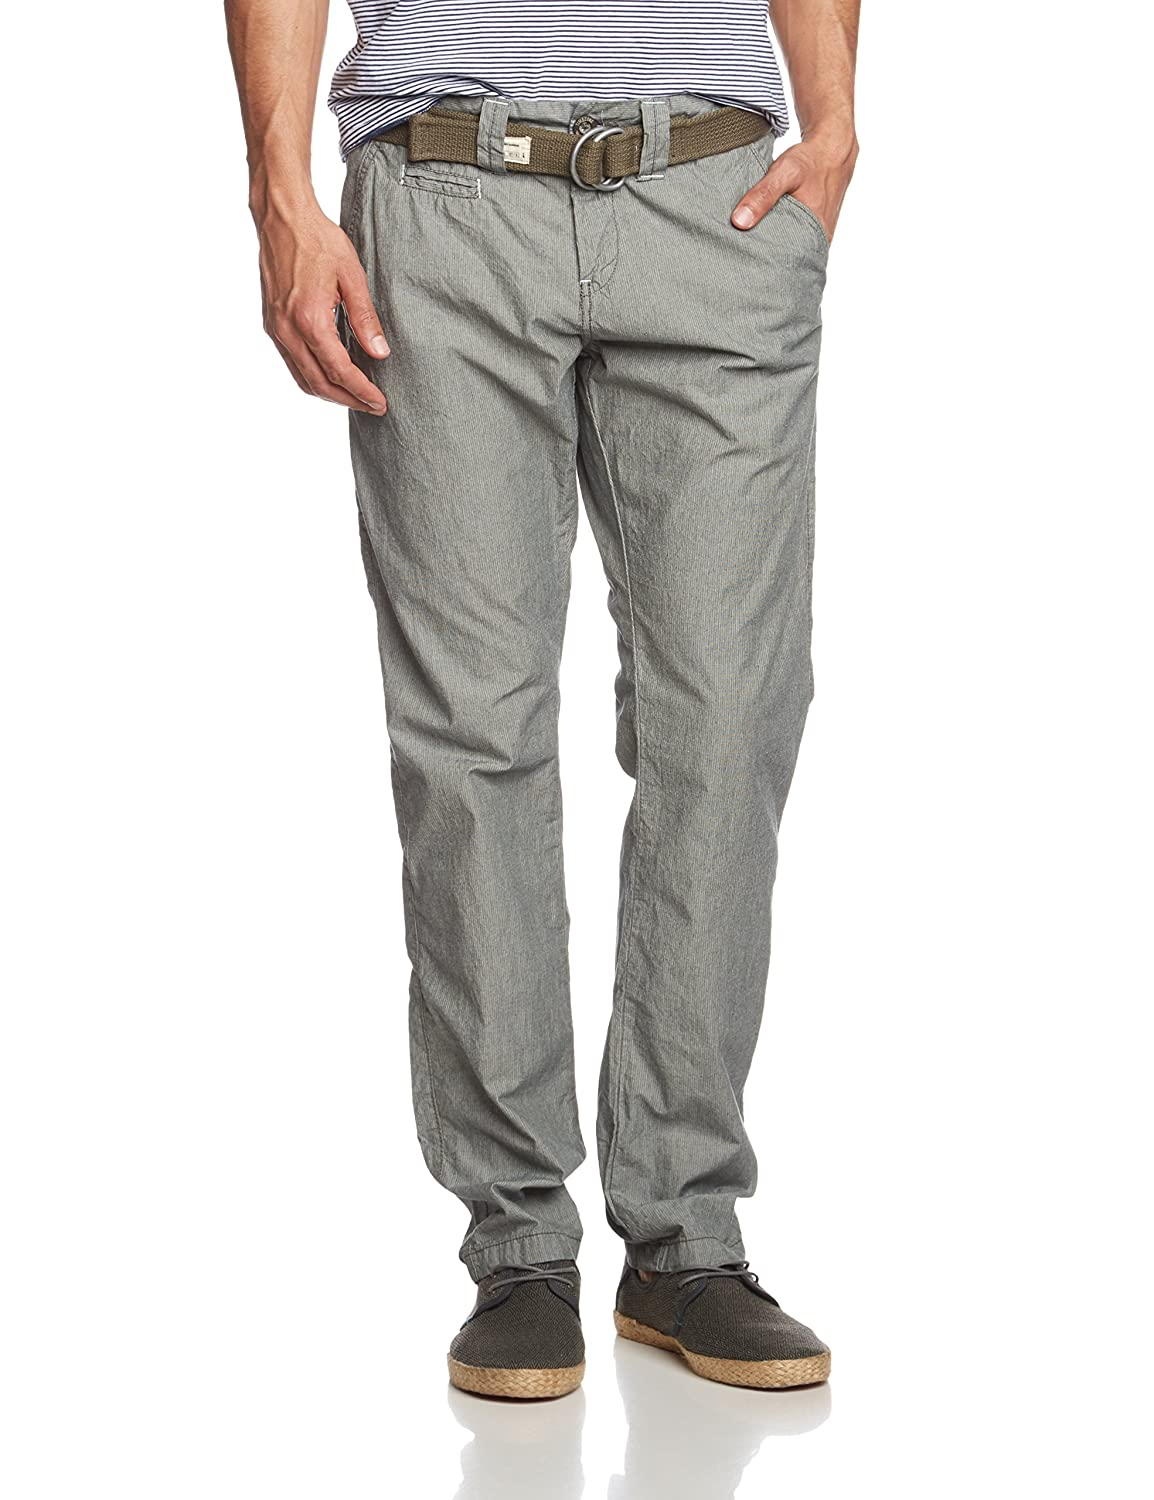 Mens Curtistz Chino Pants Incl. Belt Trousers Timezone Low Shipping For Sale How Much Cheap Online Extremely Sale Online Sale Deals Clearance Websites SwZVtLV1f